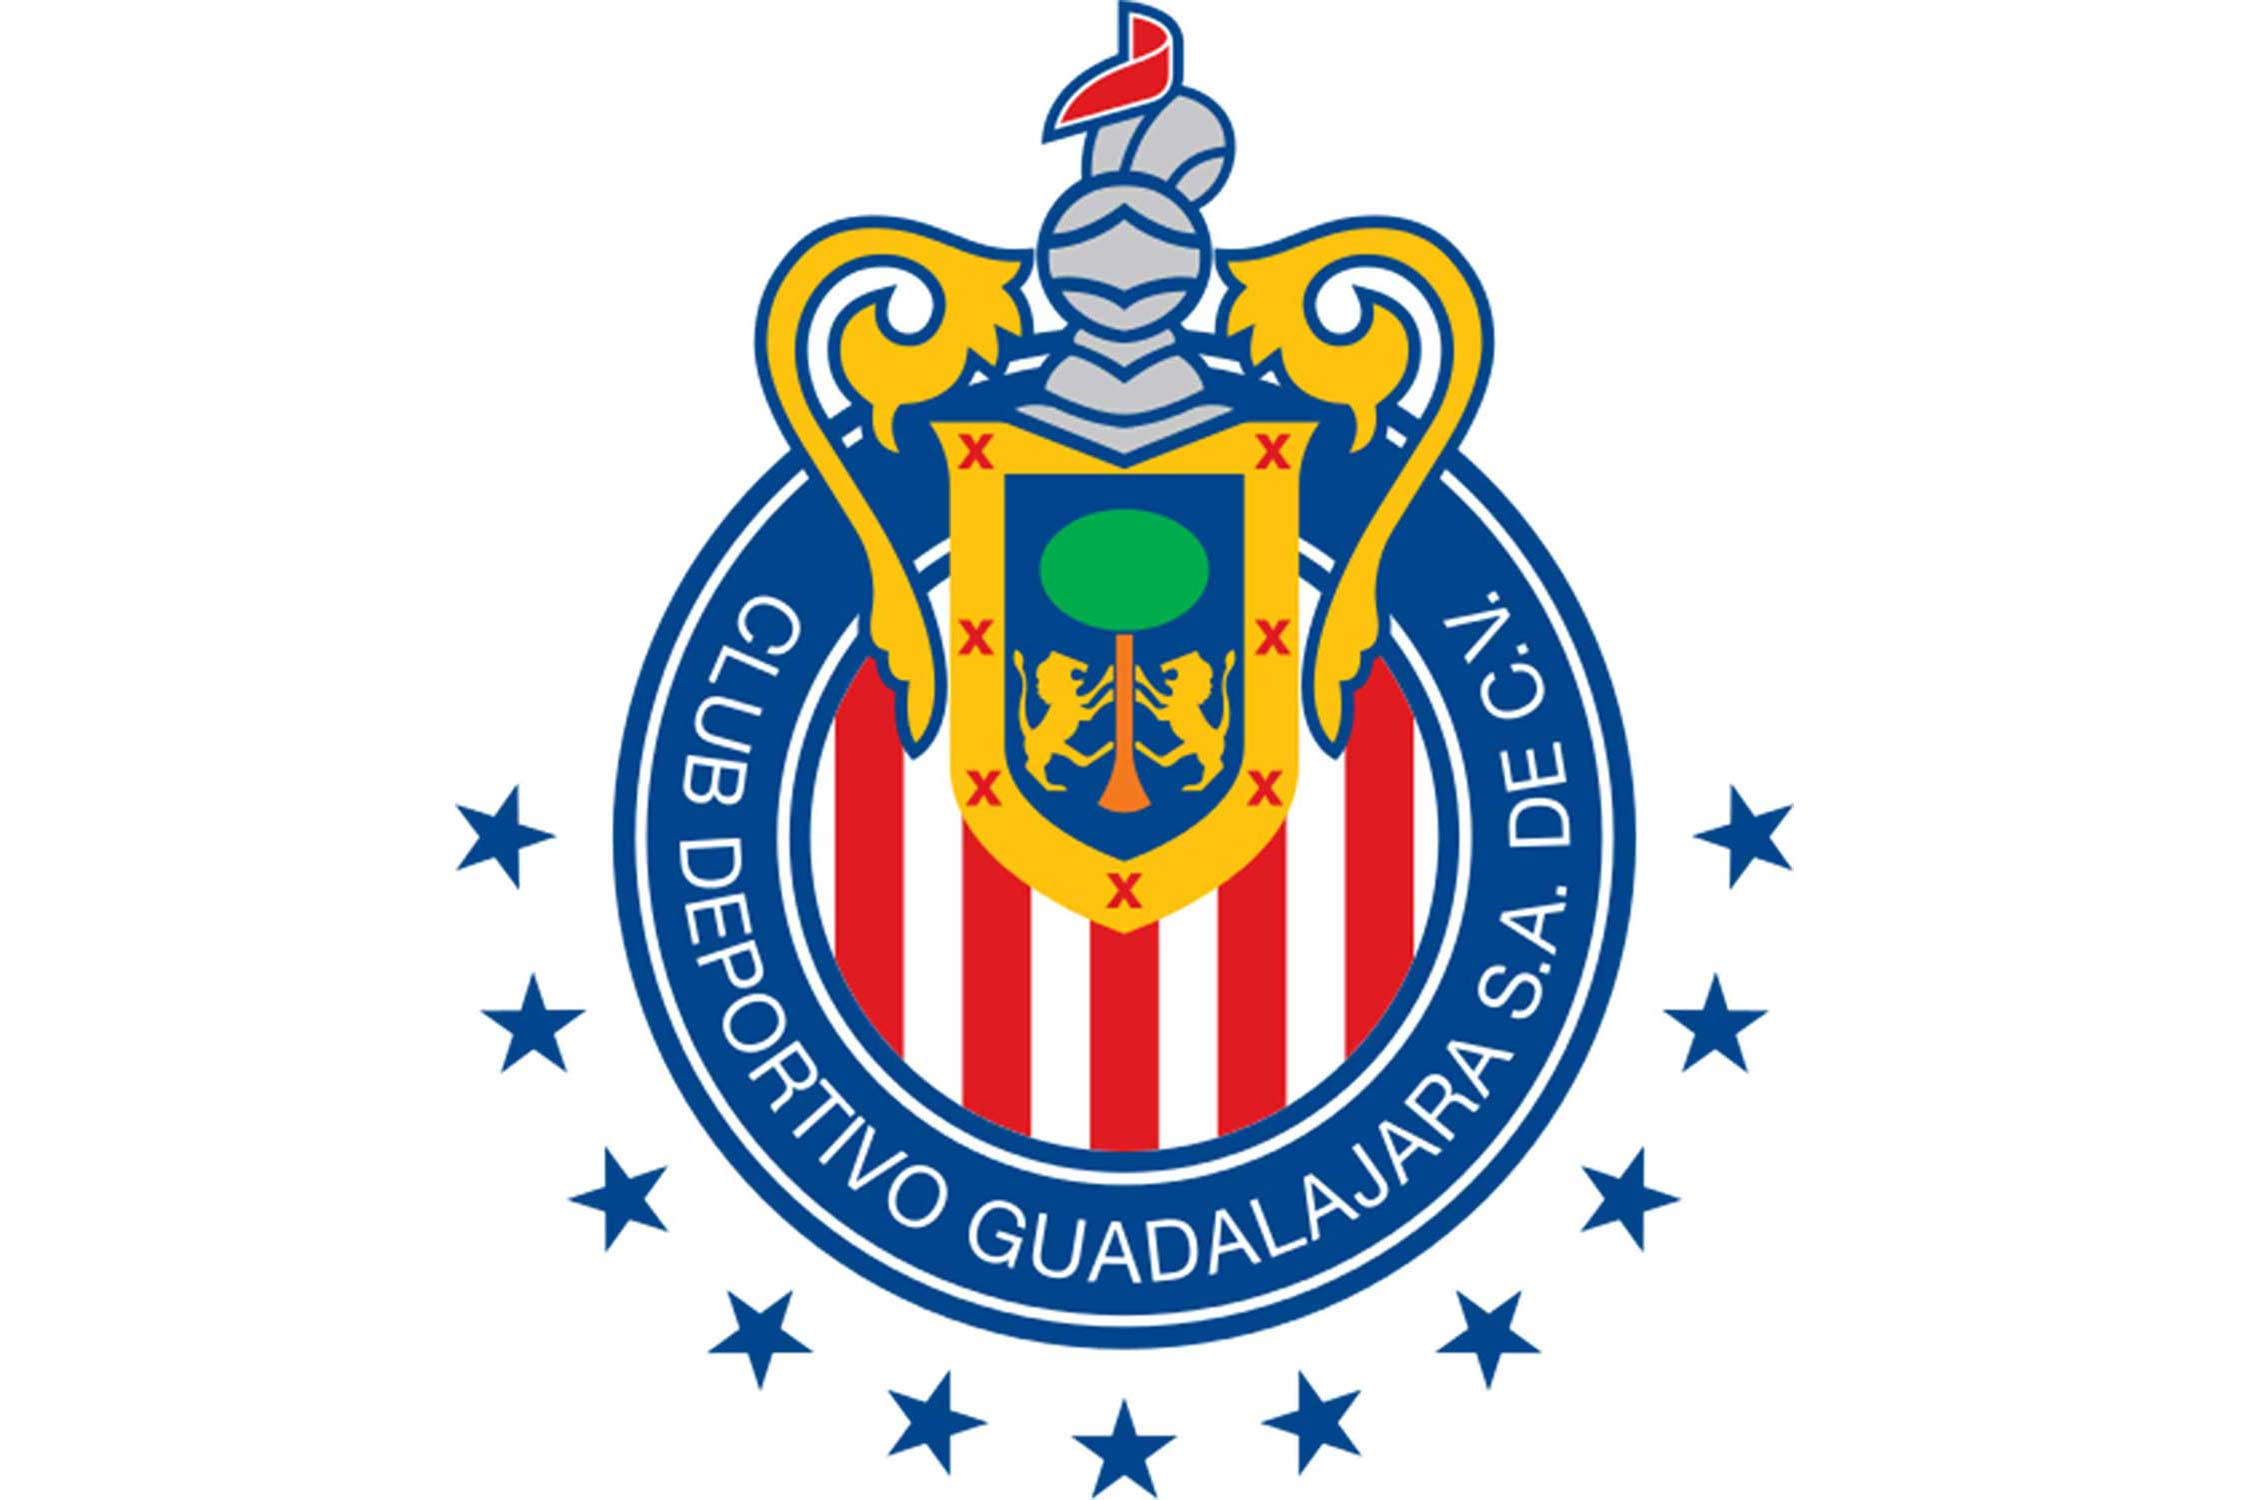 The crown and helmet come from the coat of arms of Guadalajara, granted to the city by Charles V in 1539. The red and white stripes are a reference to the flag of the Belgian city of Brugge, the hometown of club founder Edgar Everaert.